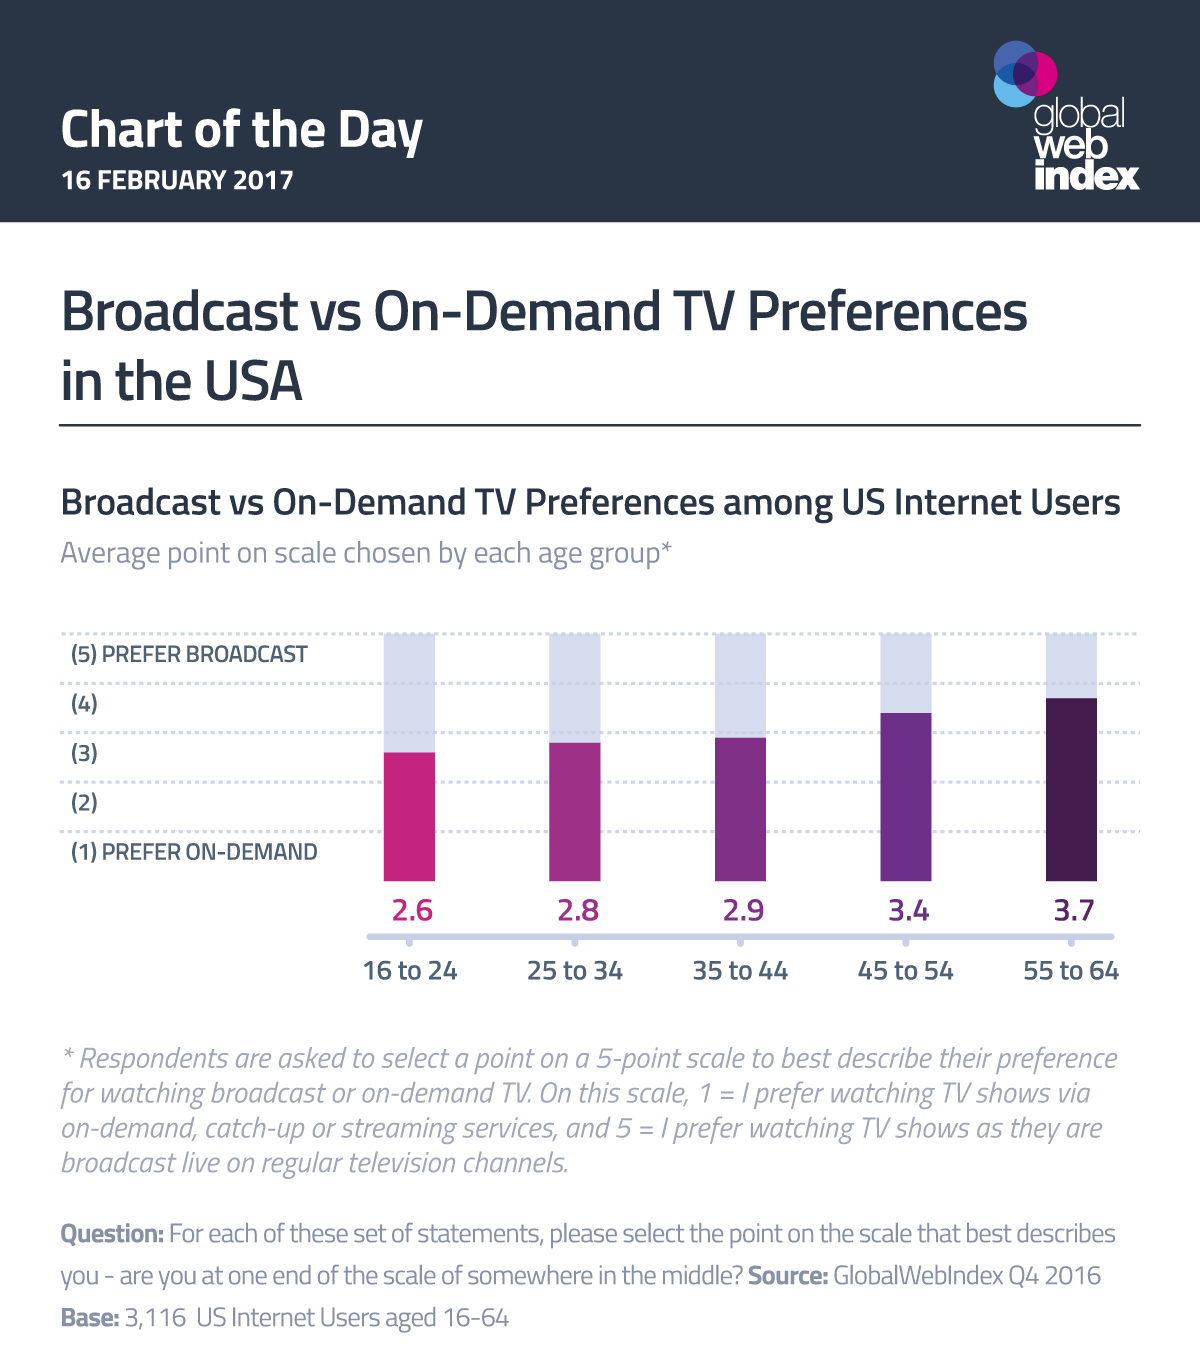 Broadcast vs On-Demand TV Preferences in the USA